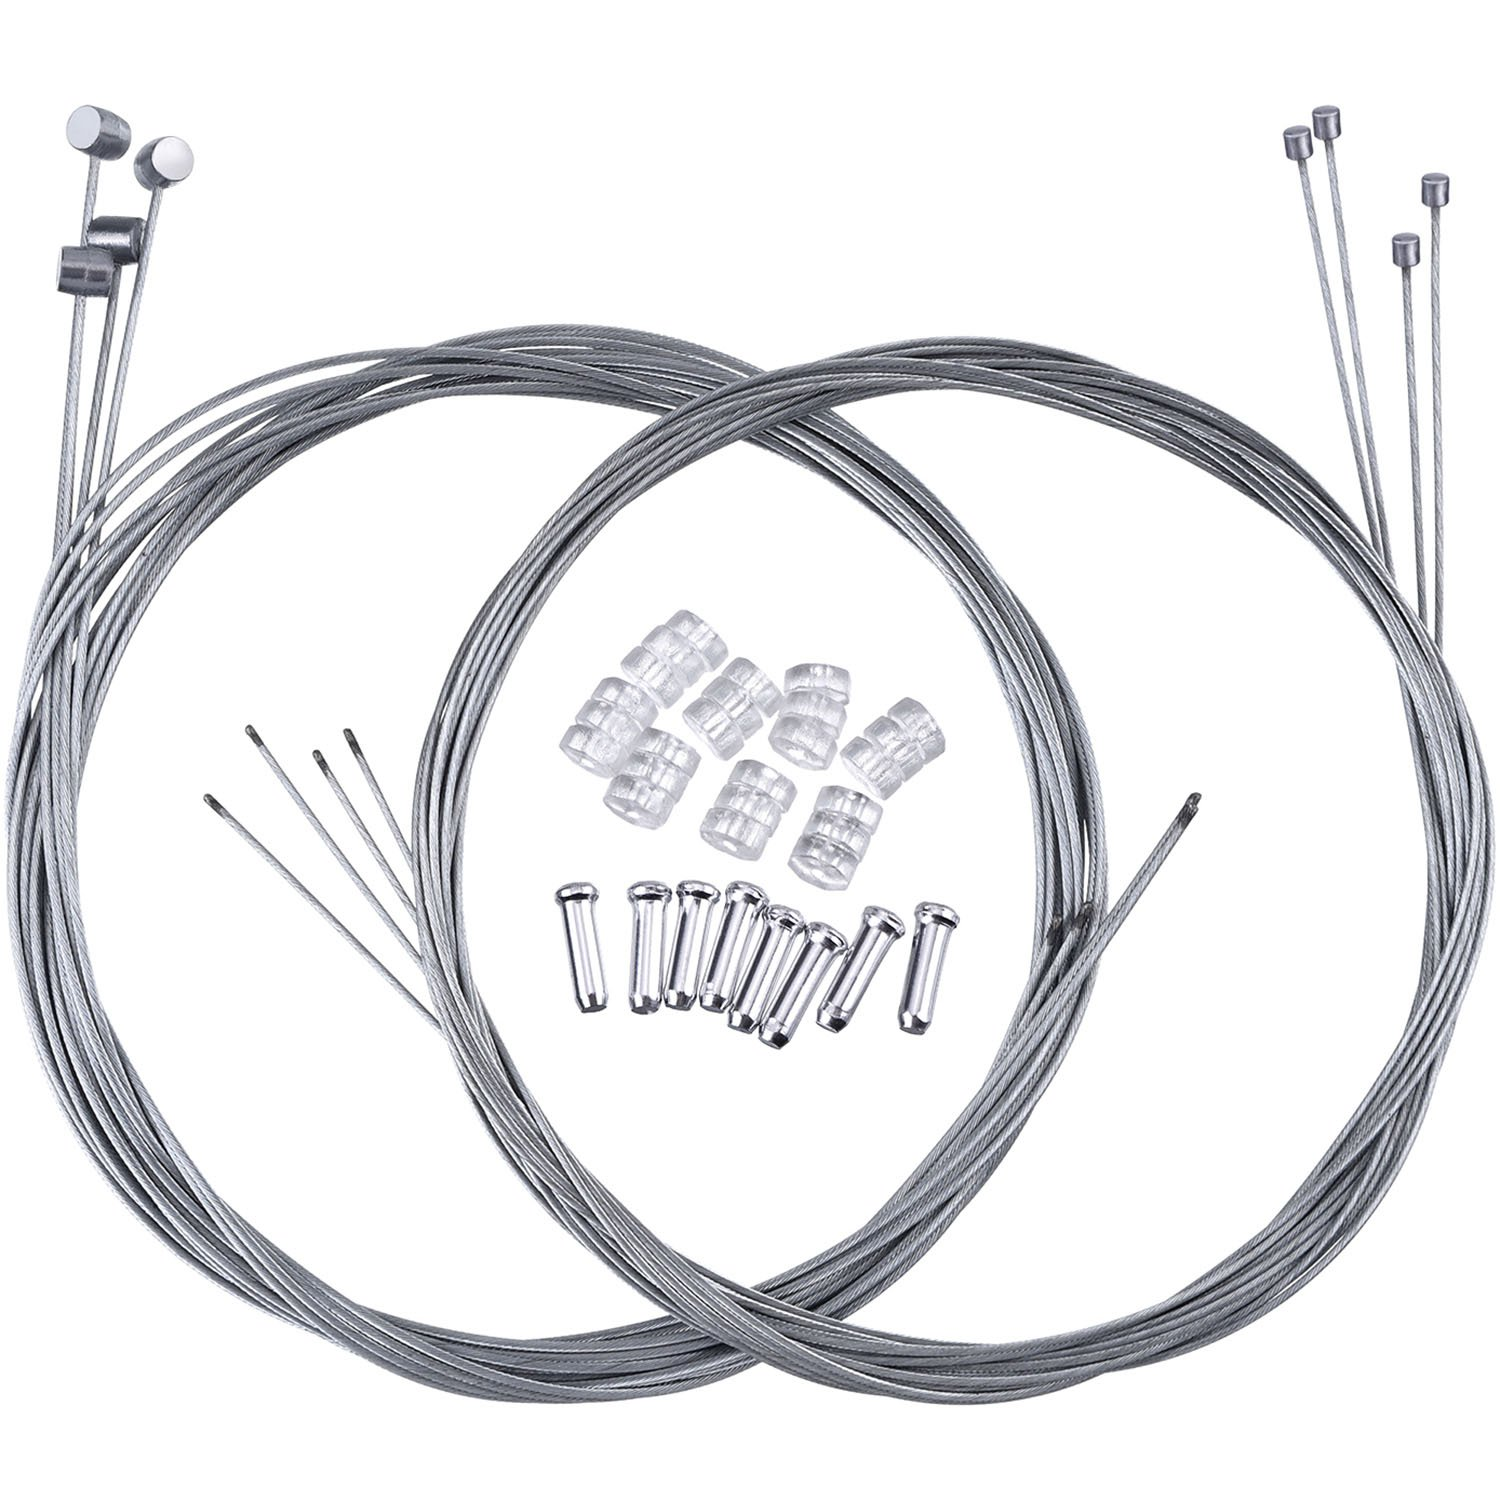 Hotop 2 Set Mountain Bike Brake Cable Gear Cable Wire and Cable End Crimps Kit